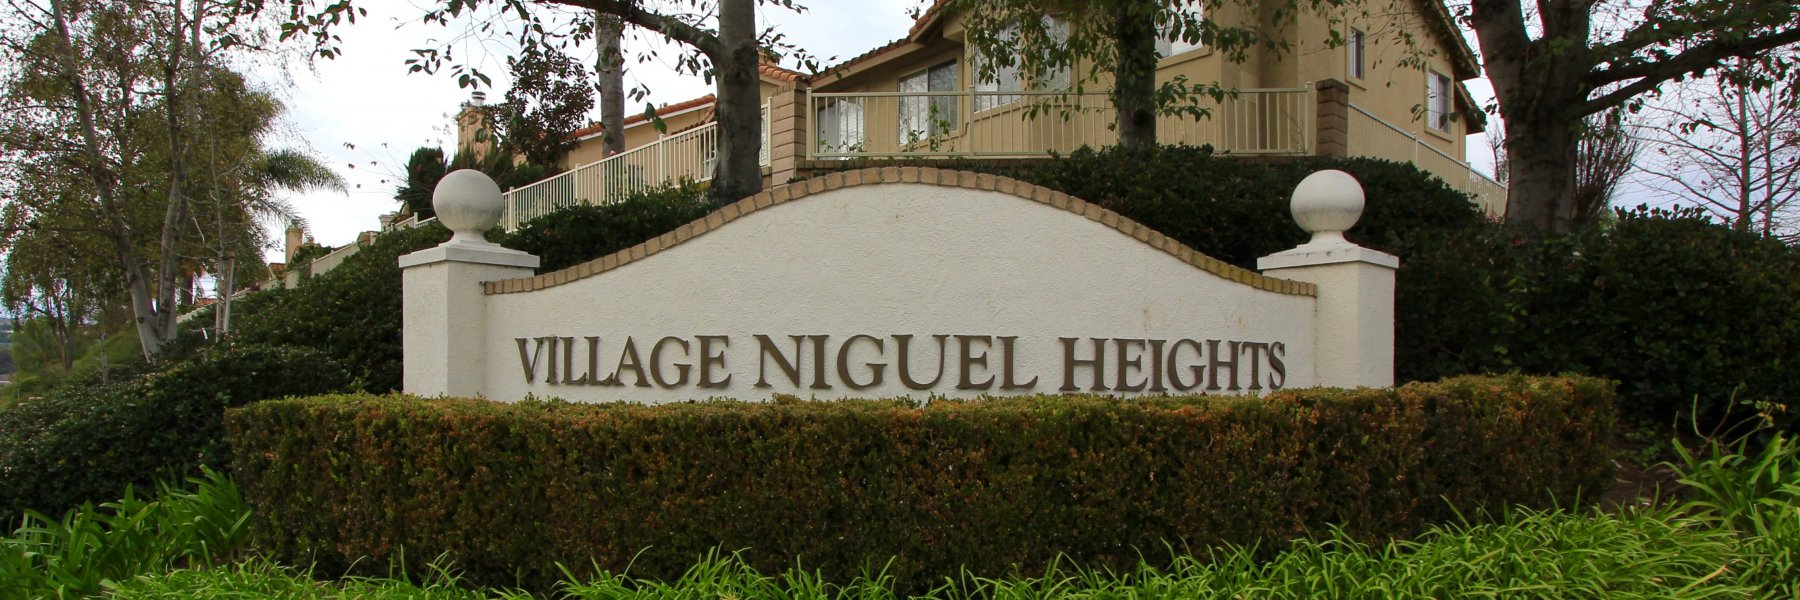 Village Niguel is a neighborhood of homes located in Laguna Niguel California